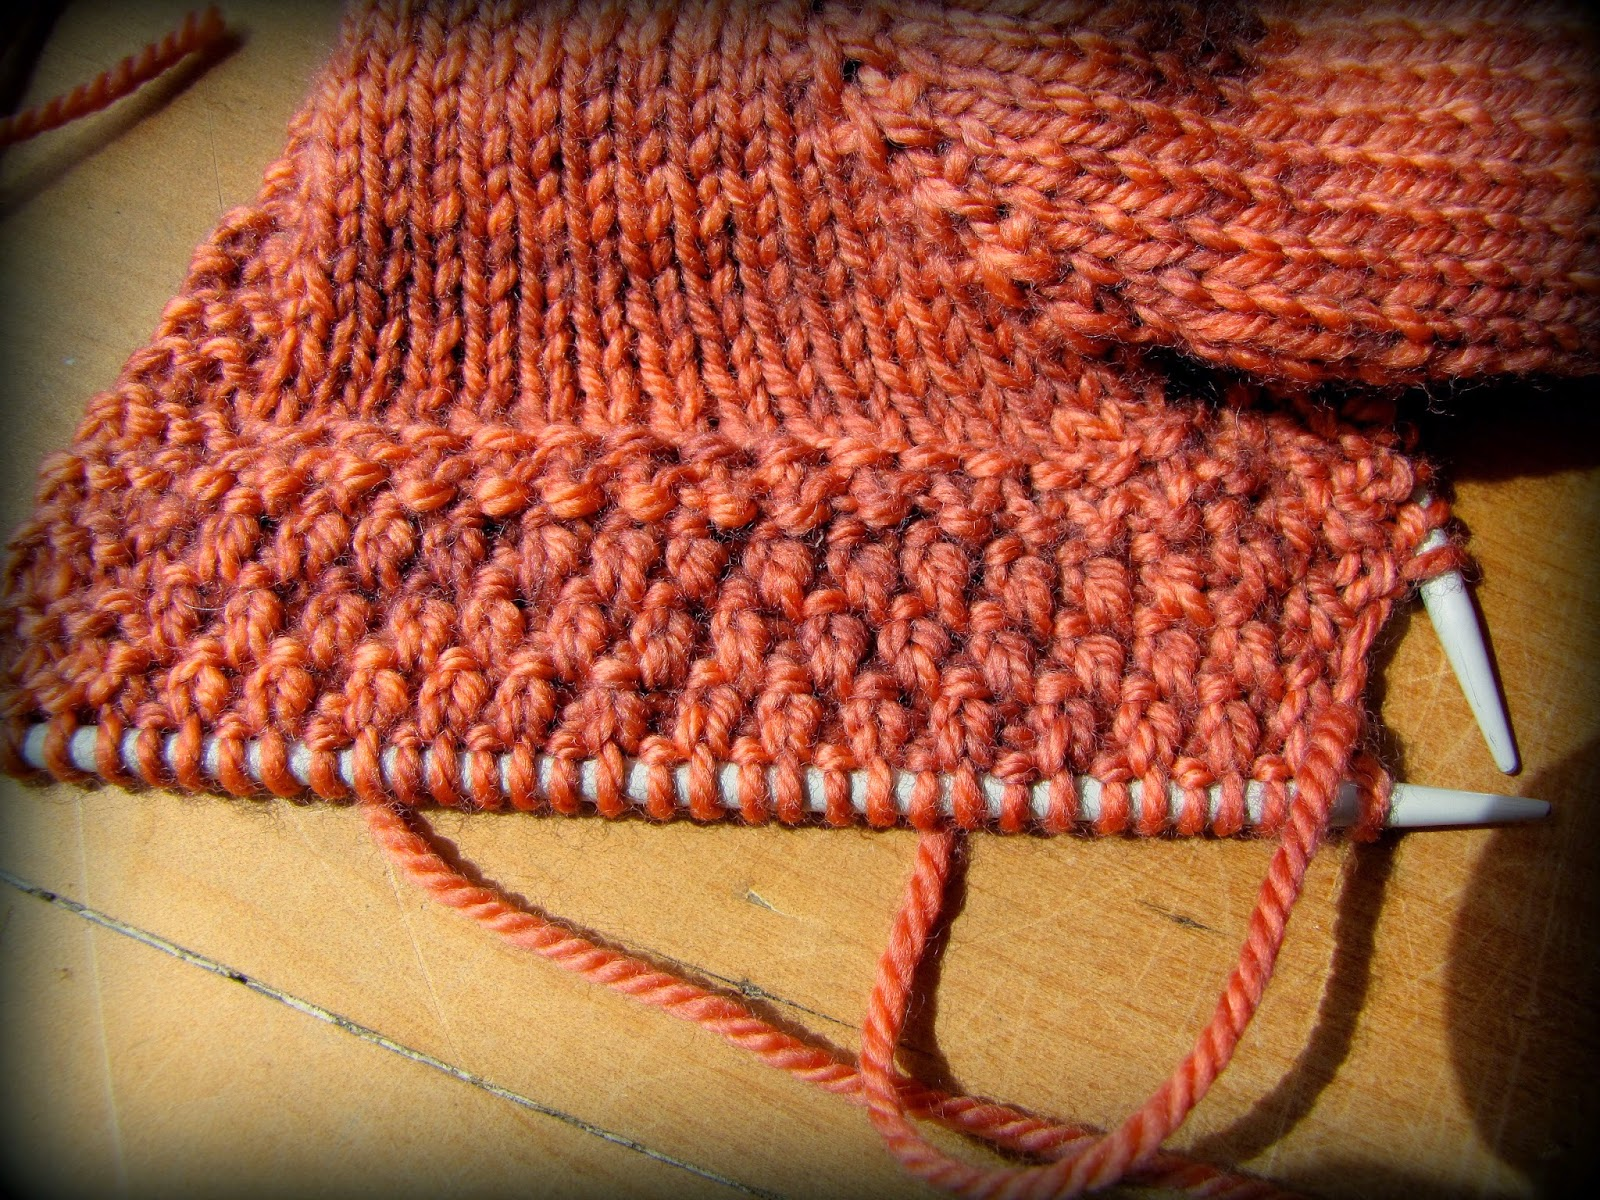 Knitting Double Moss Stitch Instructions : Miss Mollys Dolls: Arrabella & her Double Moss Stitch